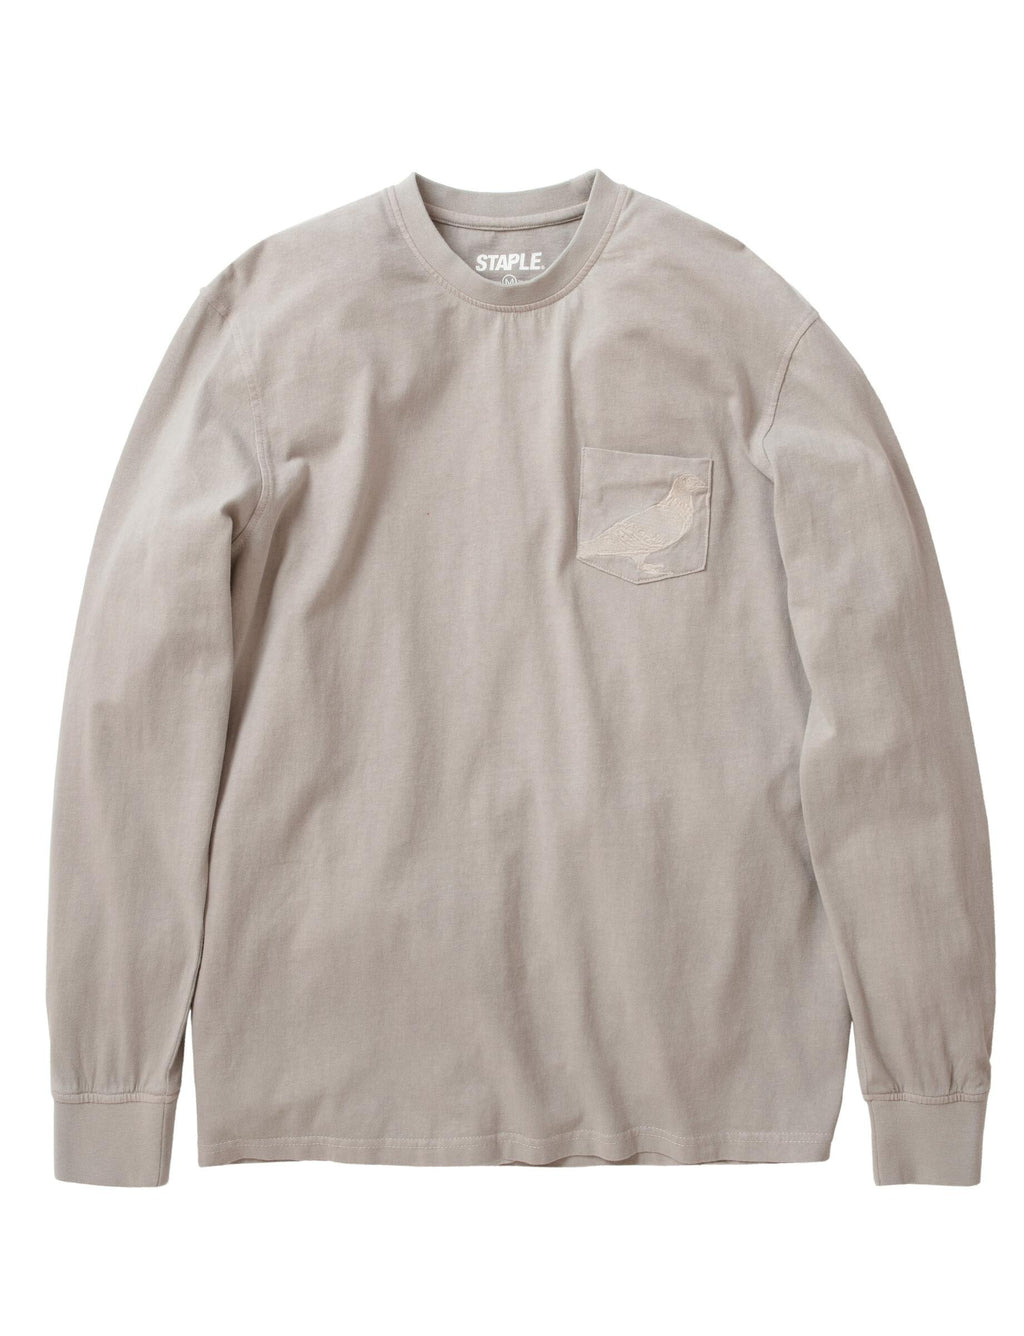 Garment Wash LS Pocket Tee - Tee | Staple Pigeon